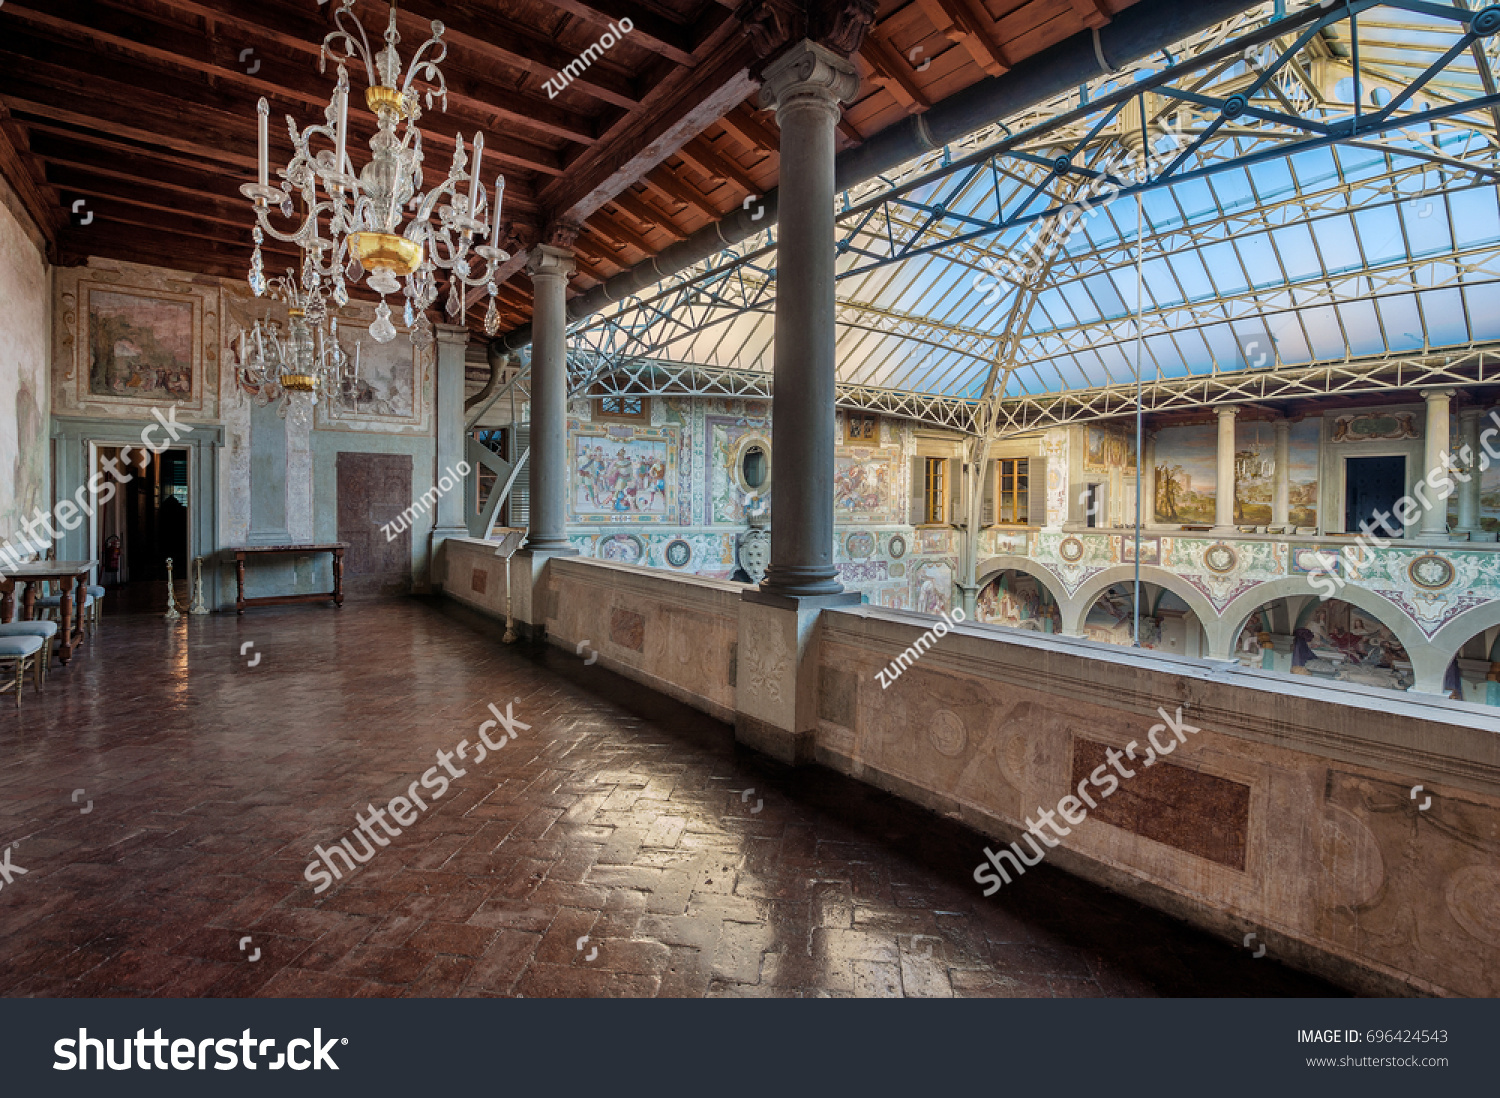 Villa Medici München Castello Firenze Italy March 17 2017 Stock Photo Edit Now